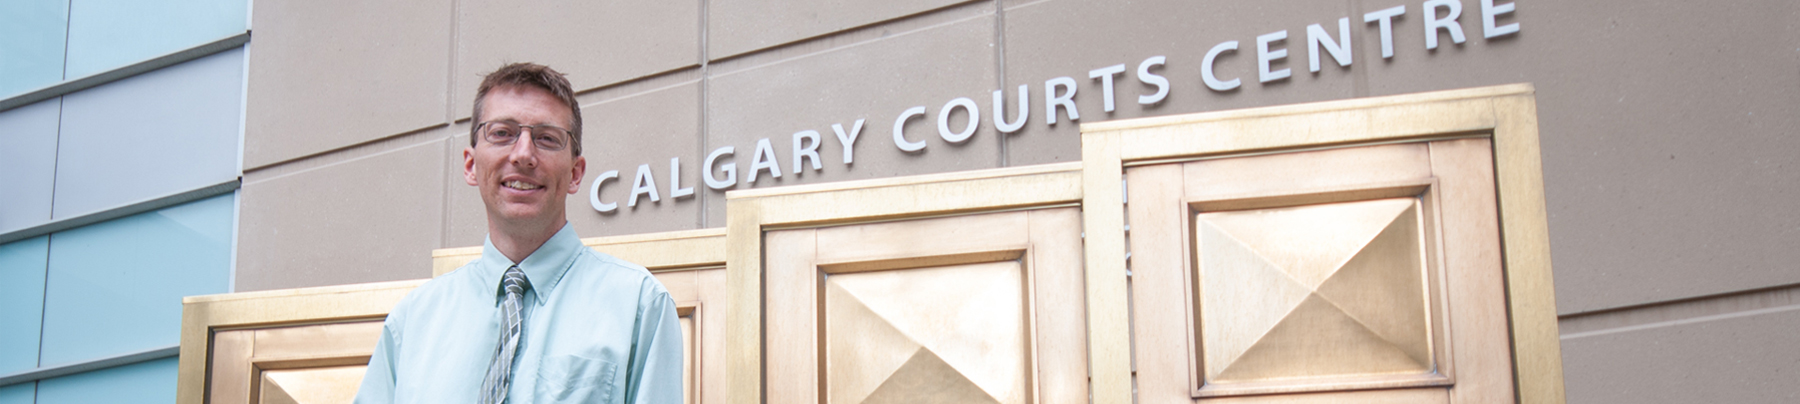 Greg Jones standing in front of the Calgary Courts